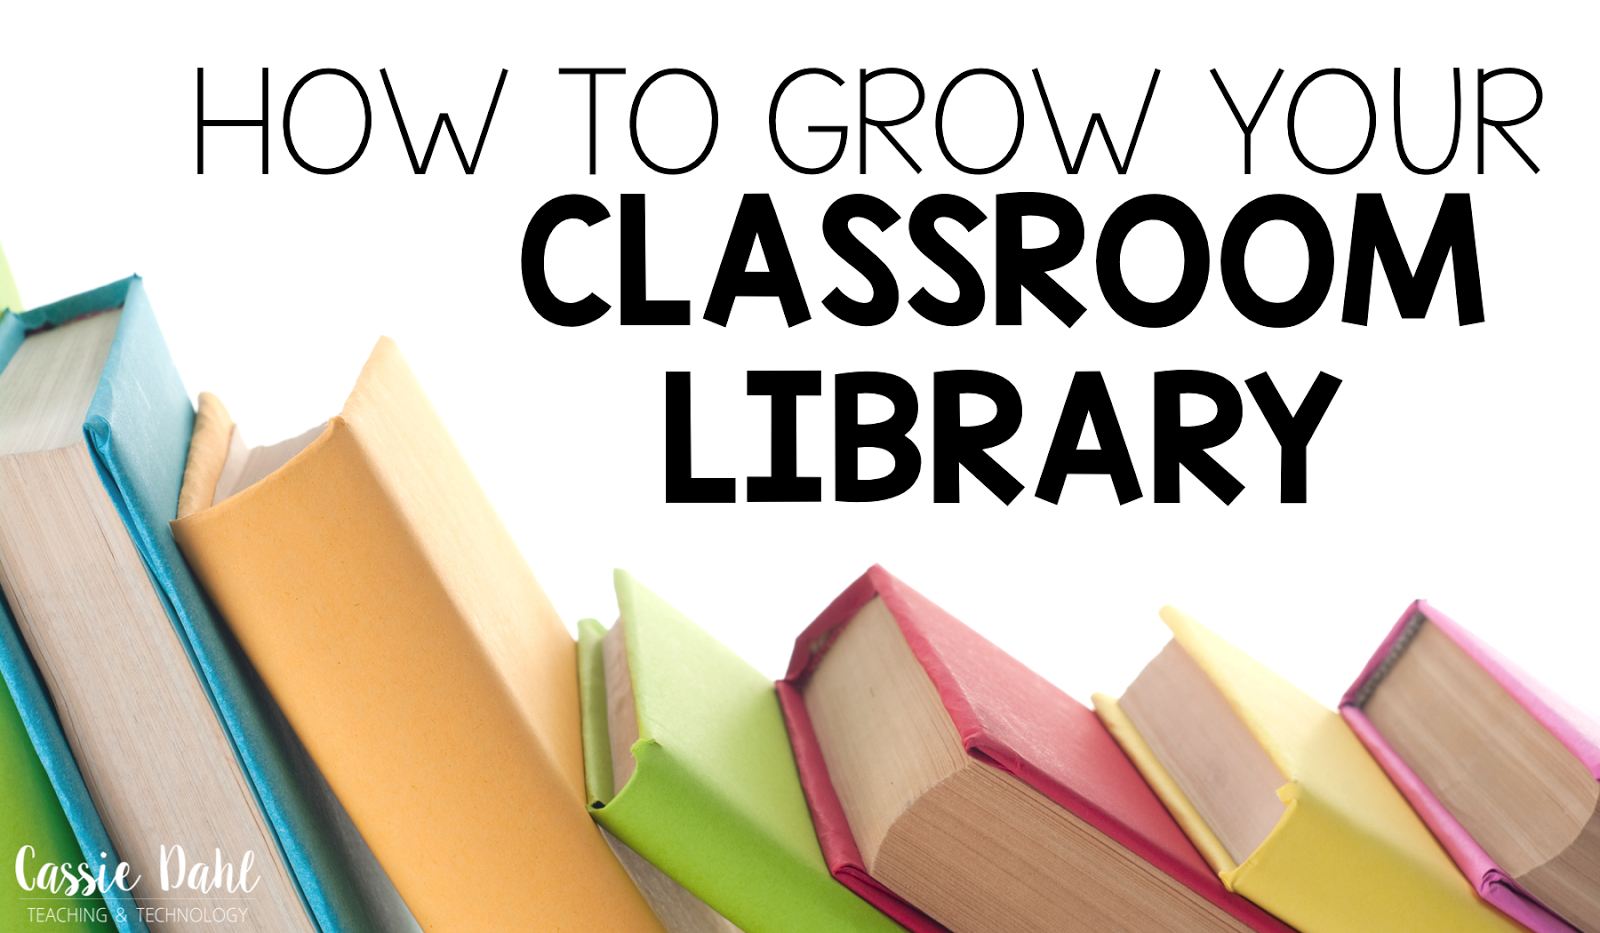 Eight tips to utilize Scholastic to grow your classroom library!